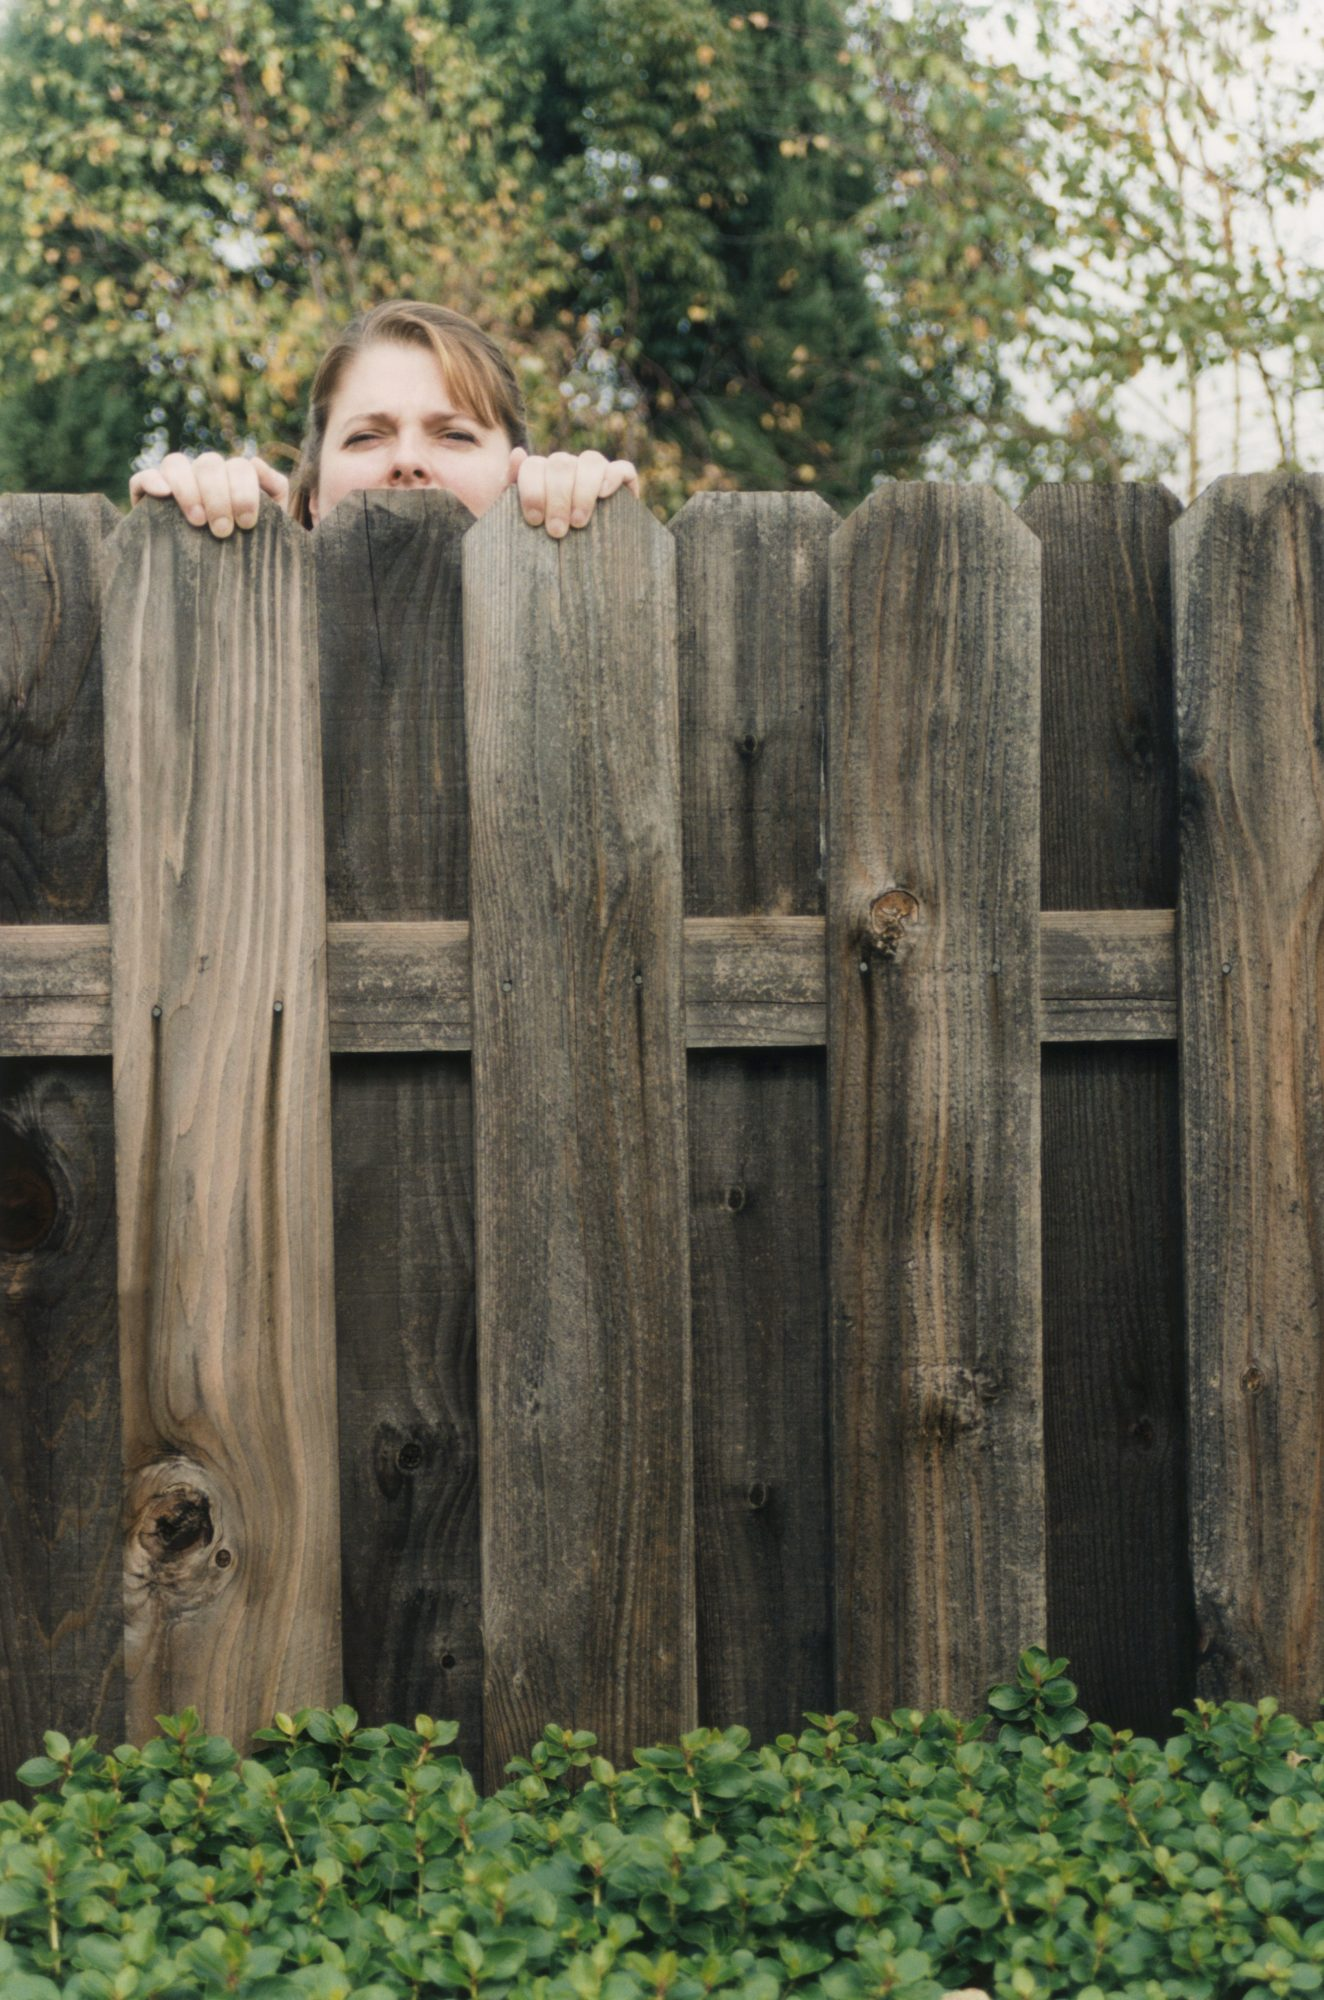 woman-peering-over-fence